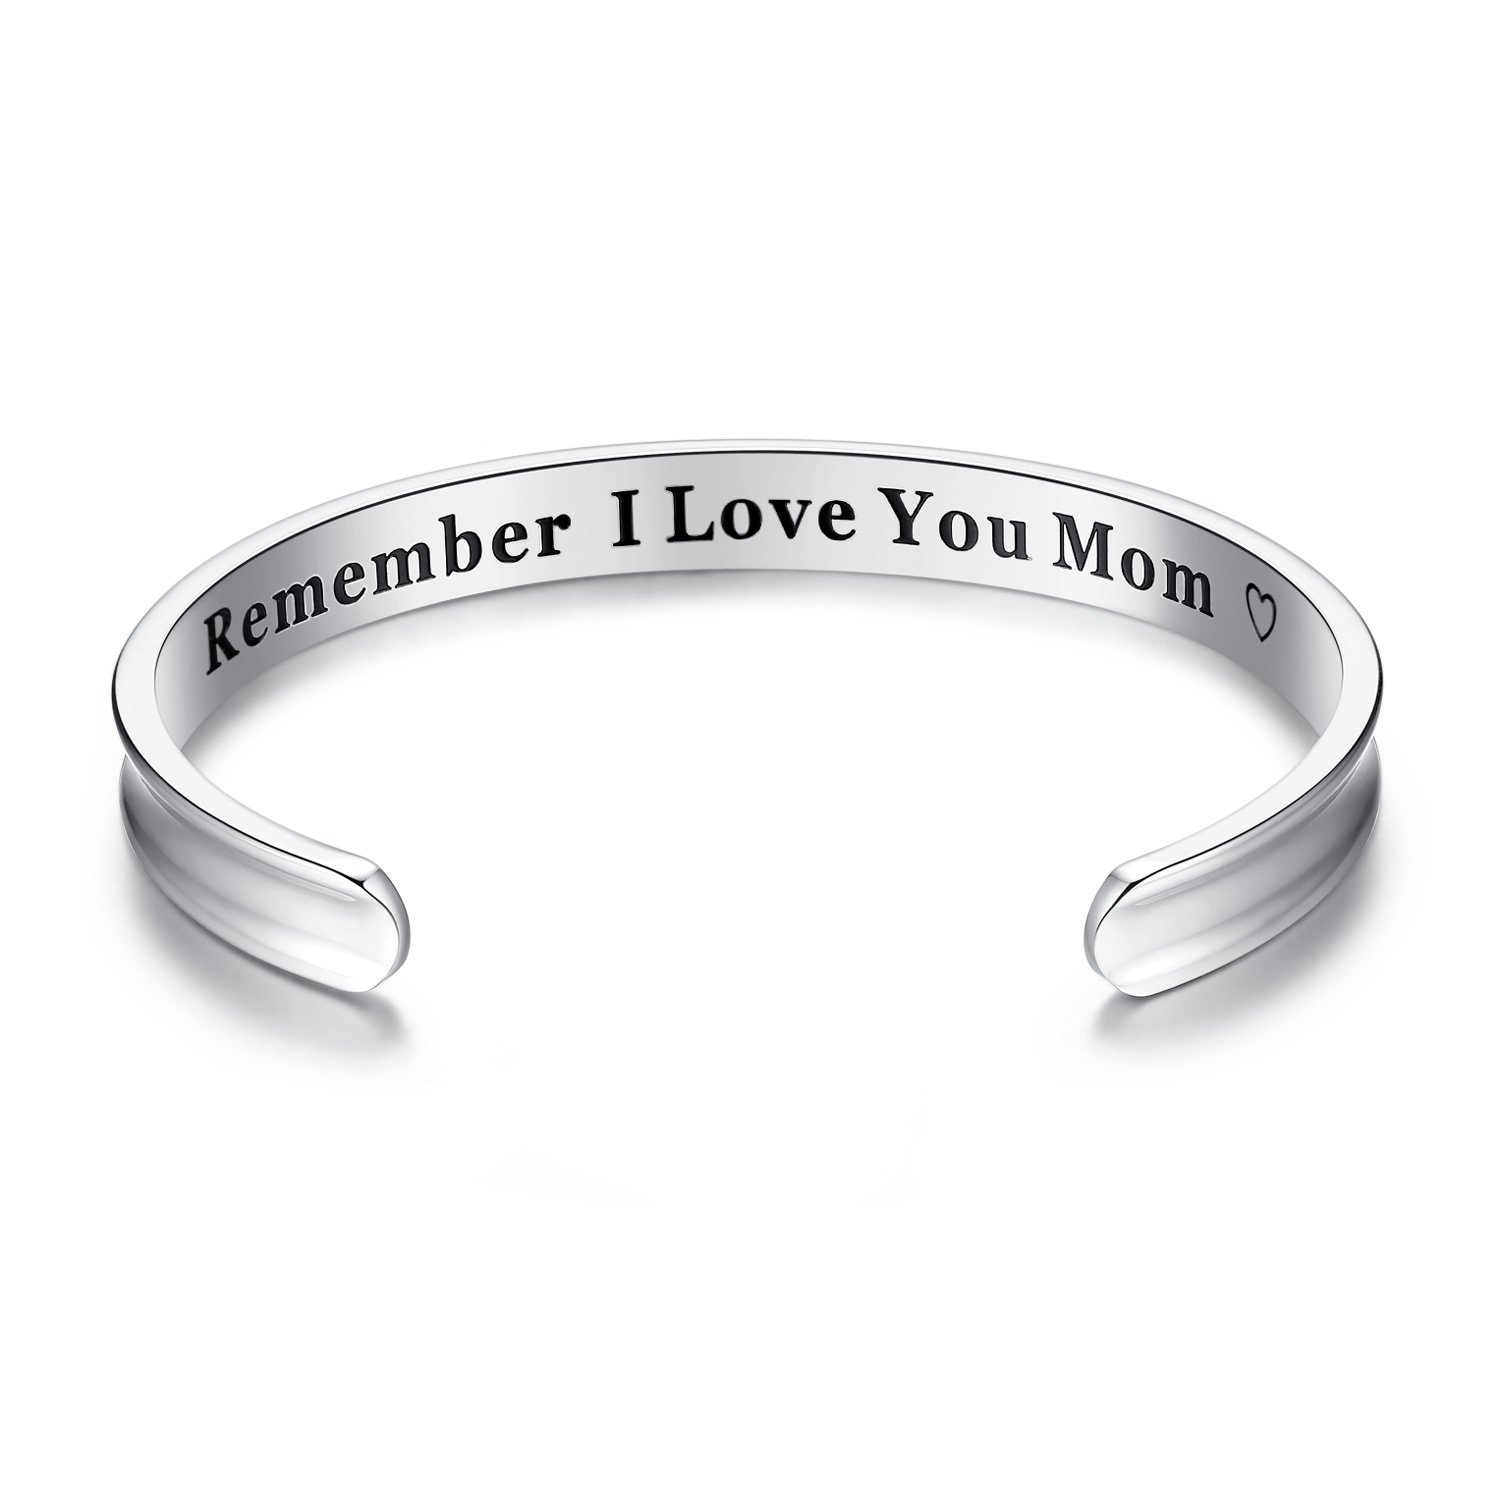 050f283ef6f4 Milamiya Remember I Love You Mom' Cuff Bangle Bracelets from Mom and  Daughter Birthdays